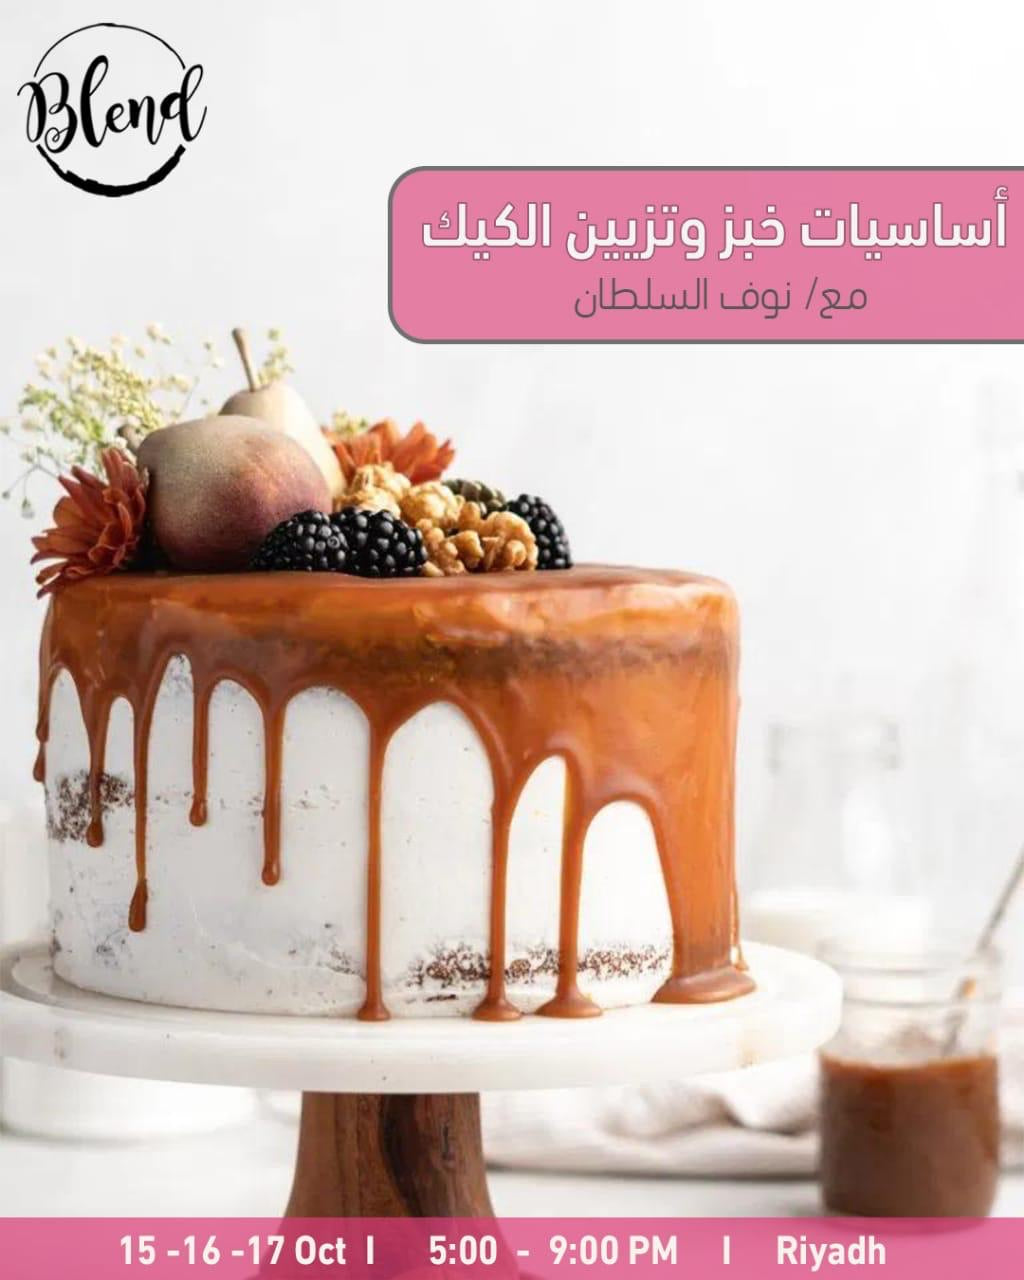 The Cake Class (15 to 17 Oct 2020)